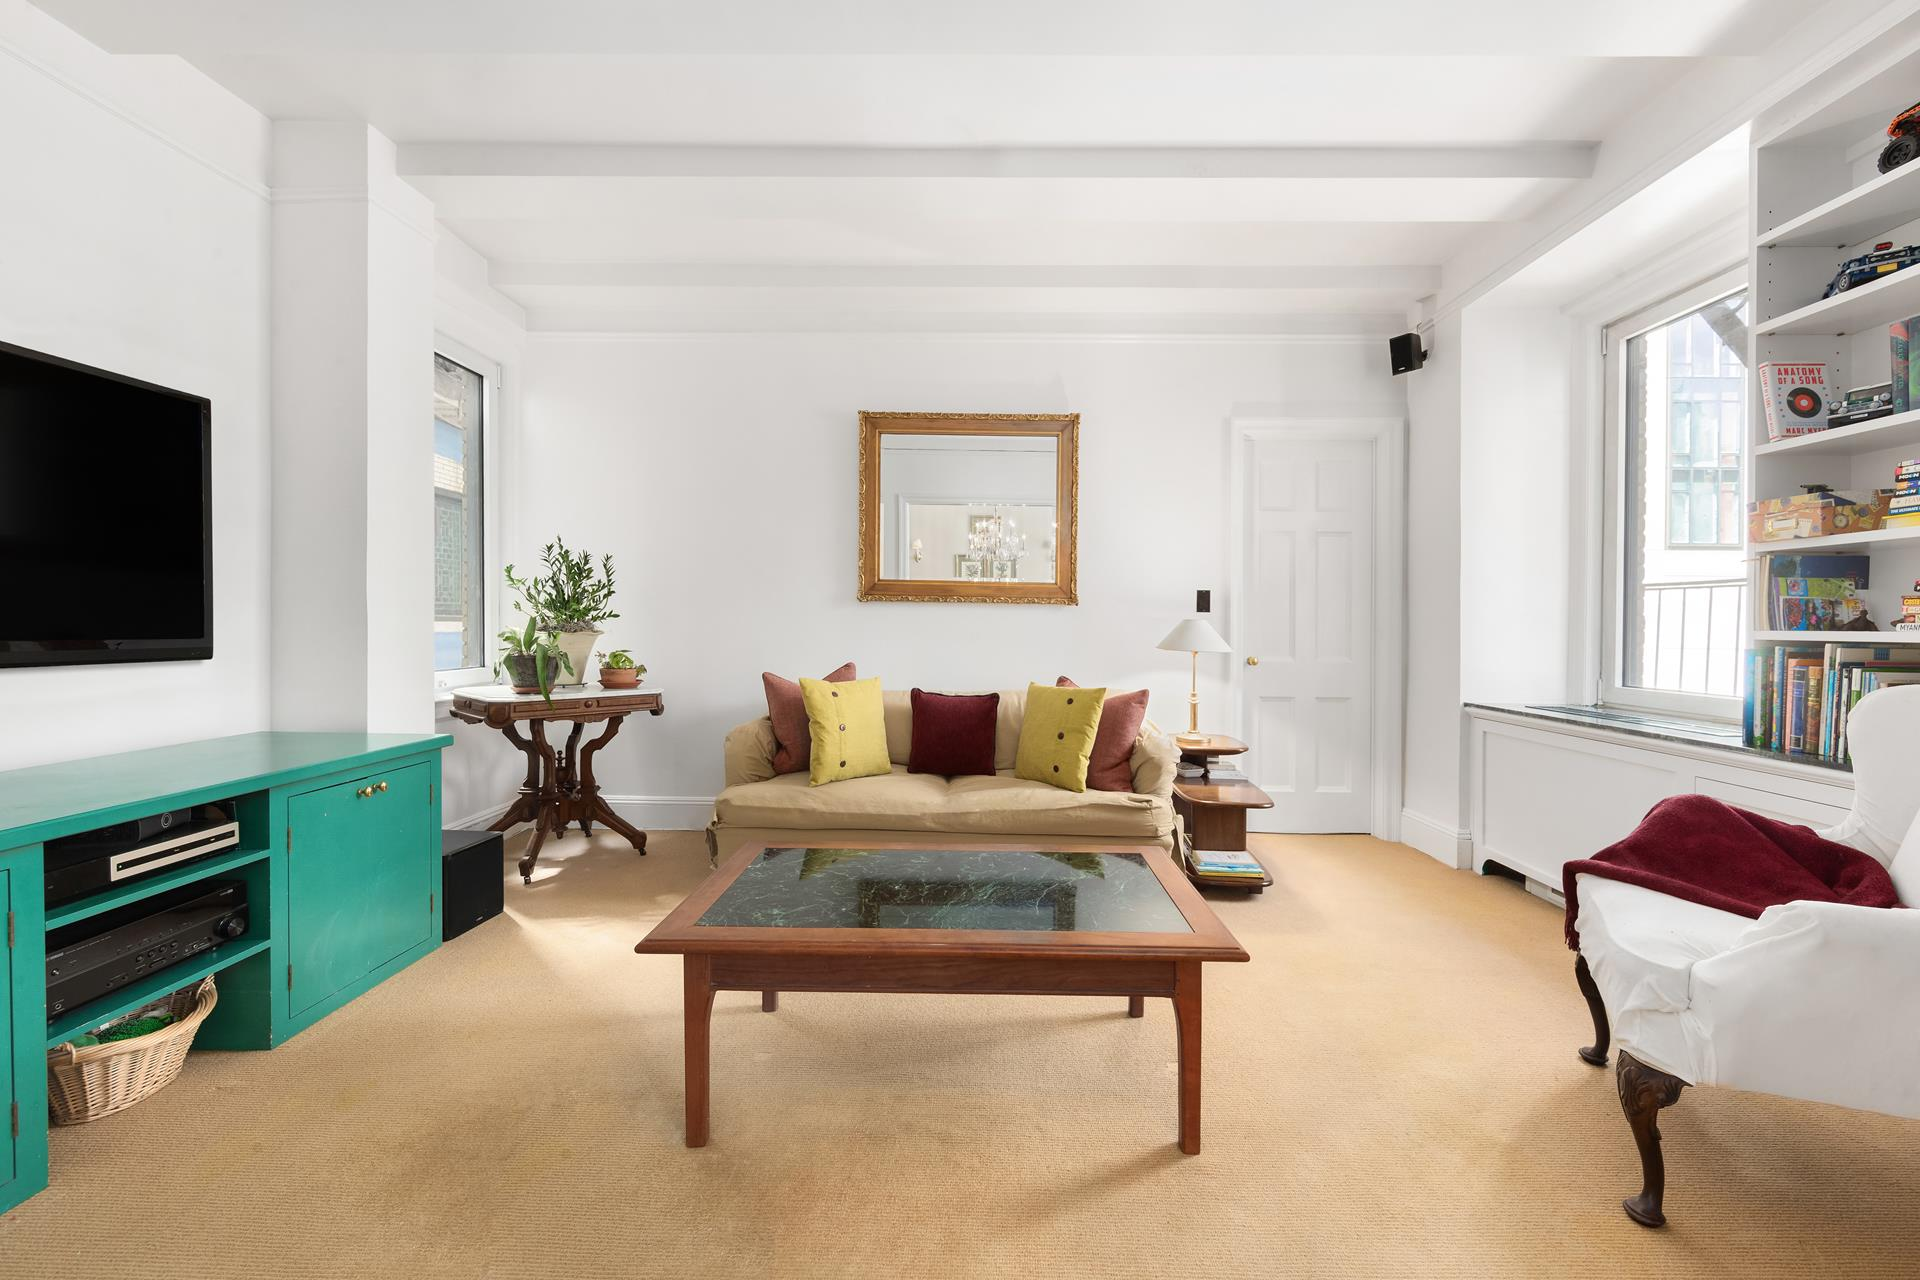 455 East 57th Street Sutton Place New York NY 10022